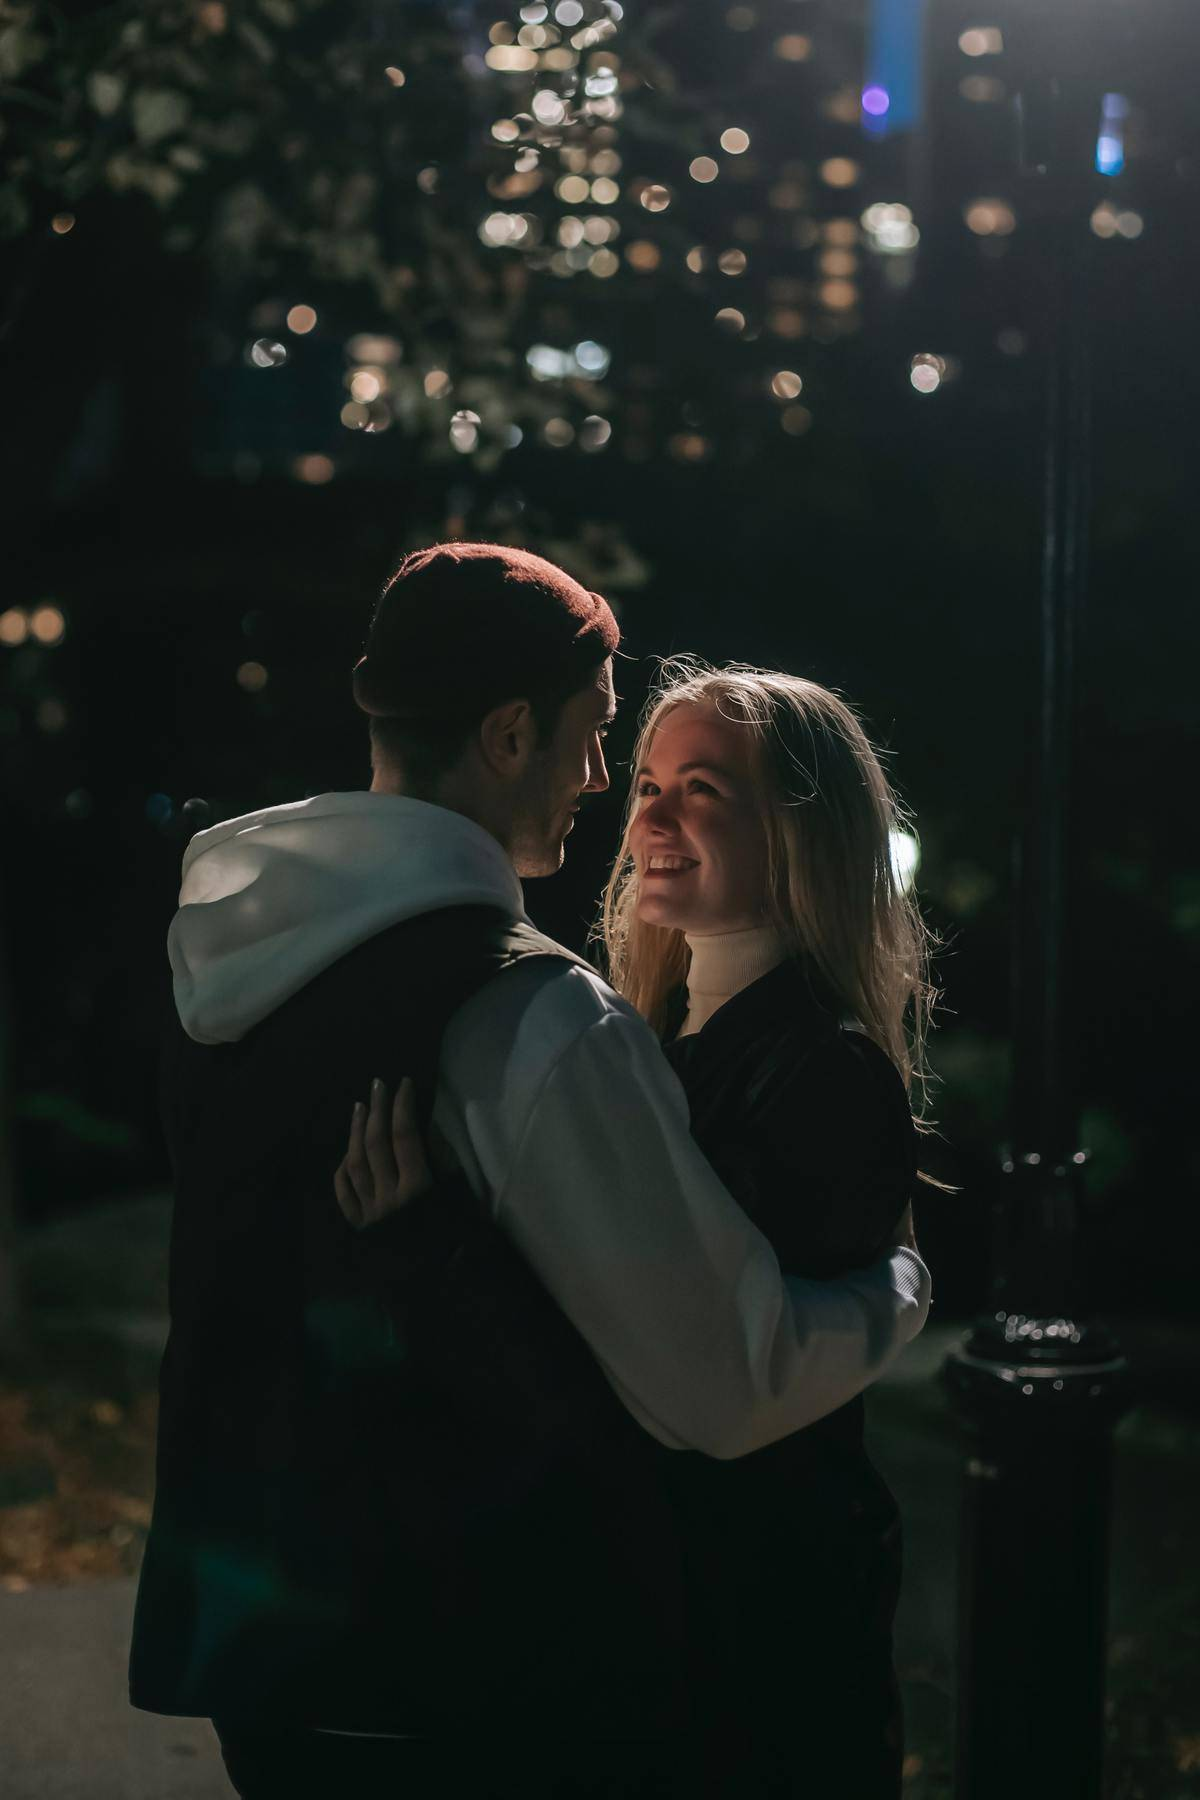 couple outside at night smiling